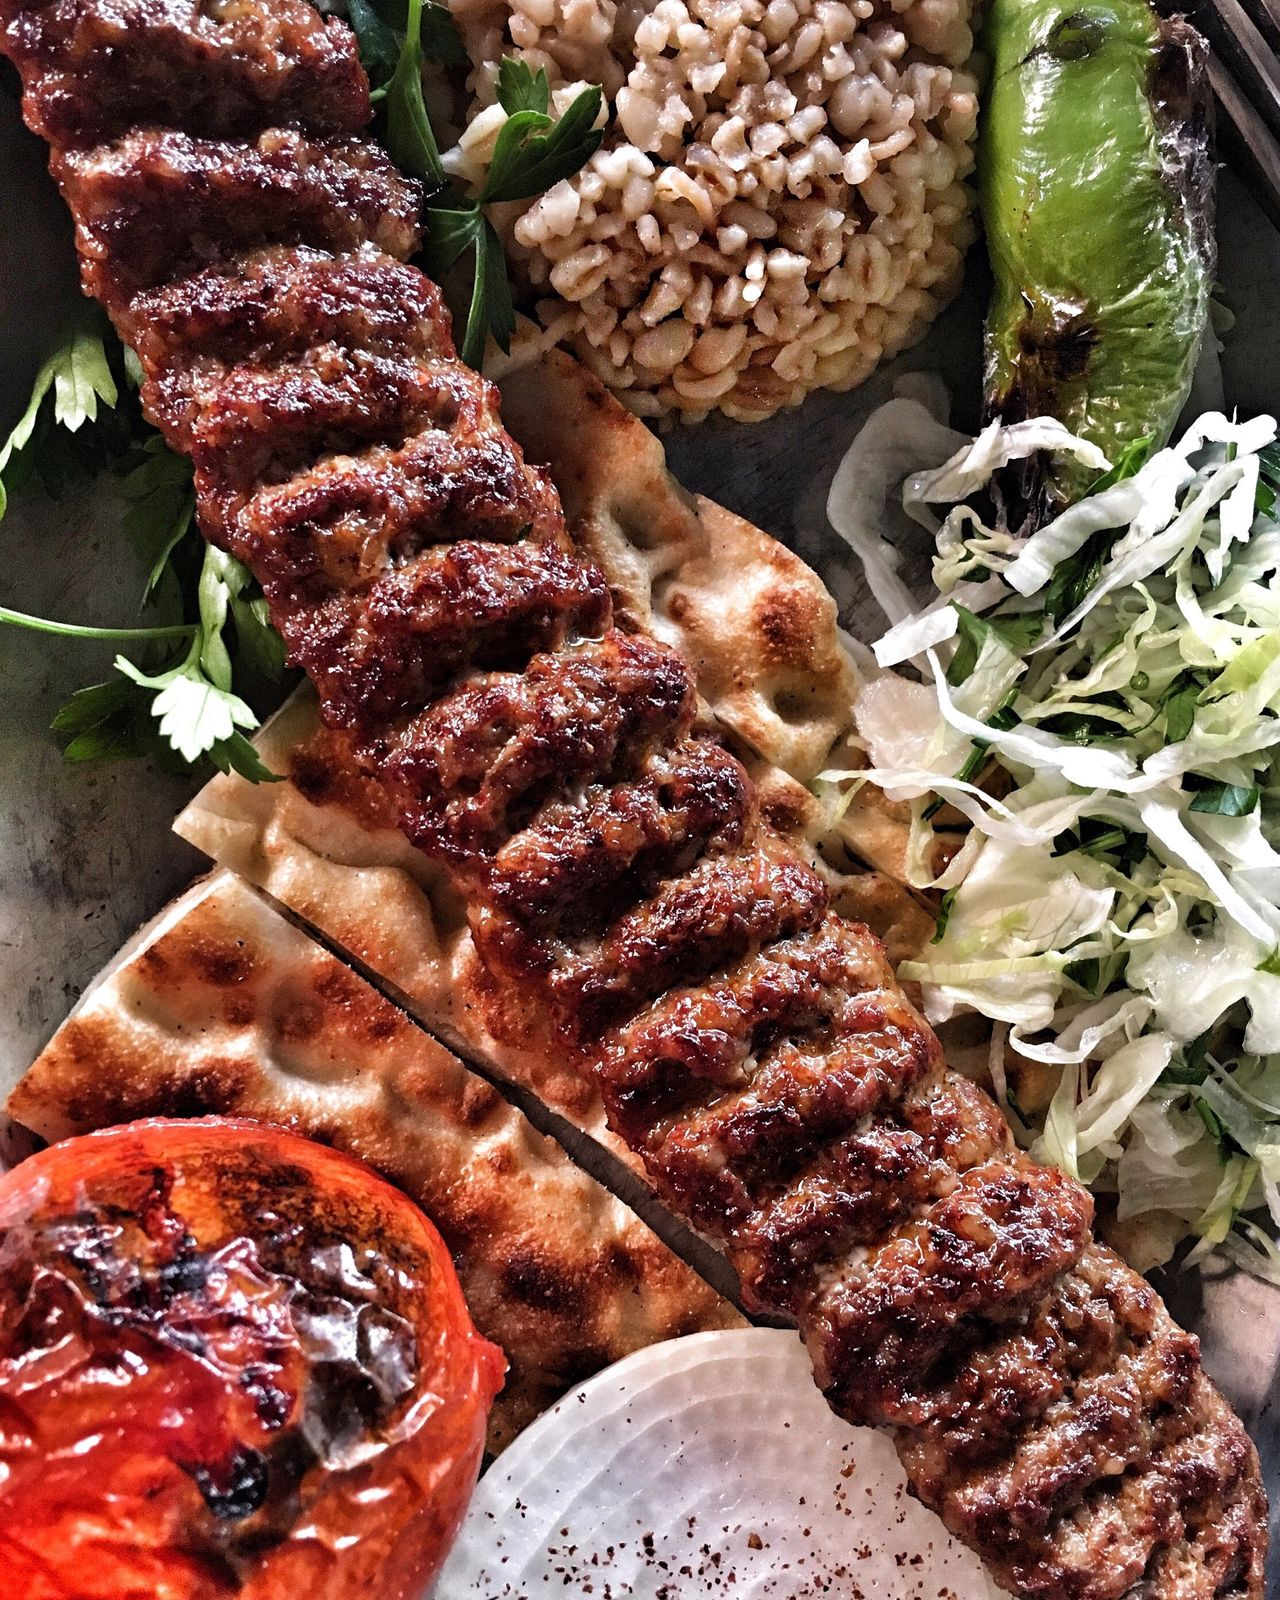 Food adventures in Turkey Food Meat Kebab Turkey Tirkishfood Healthy Eating Close-up Food And Drink Freshness Day Ready-to-eat Red Meat Restaurant Food Food Kebap Istanbul